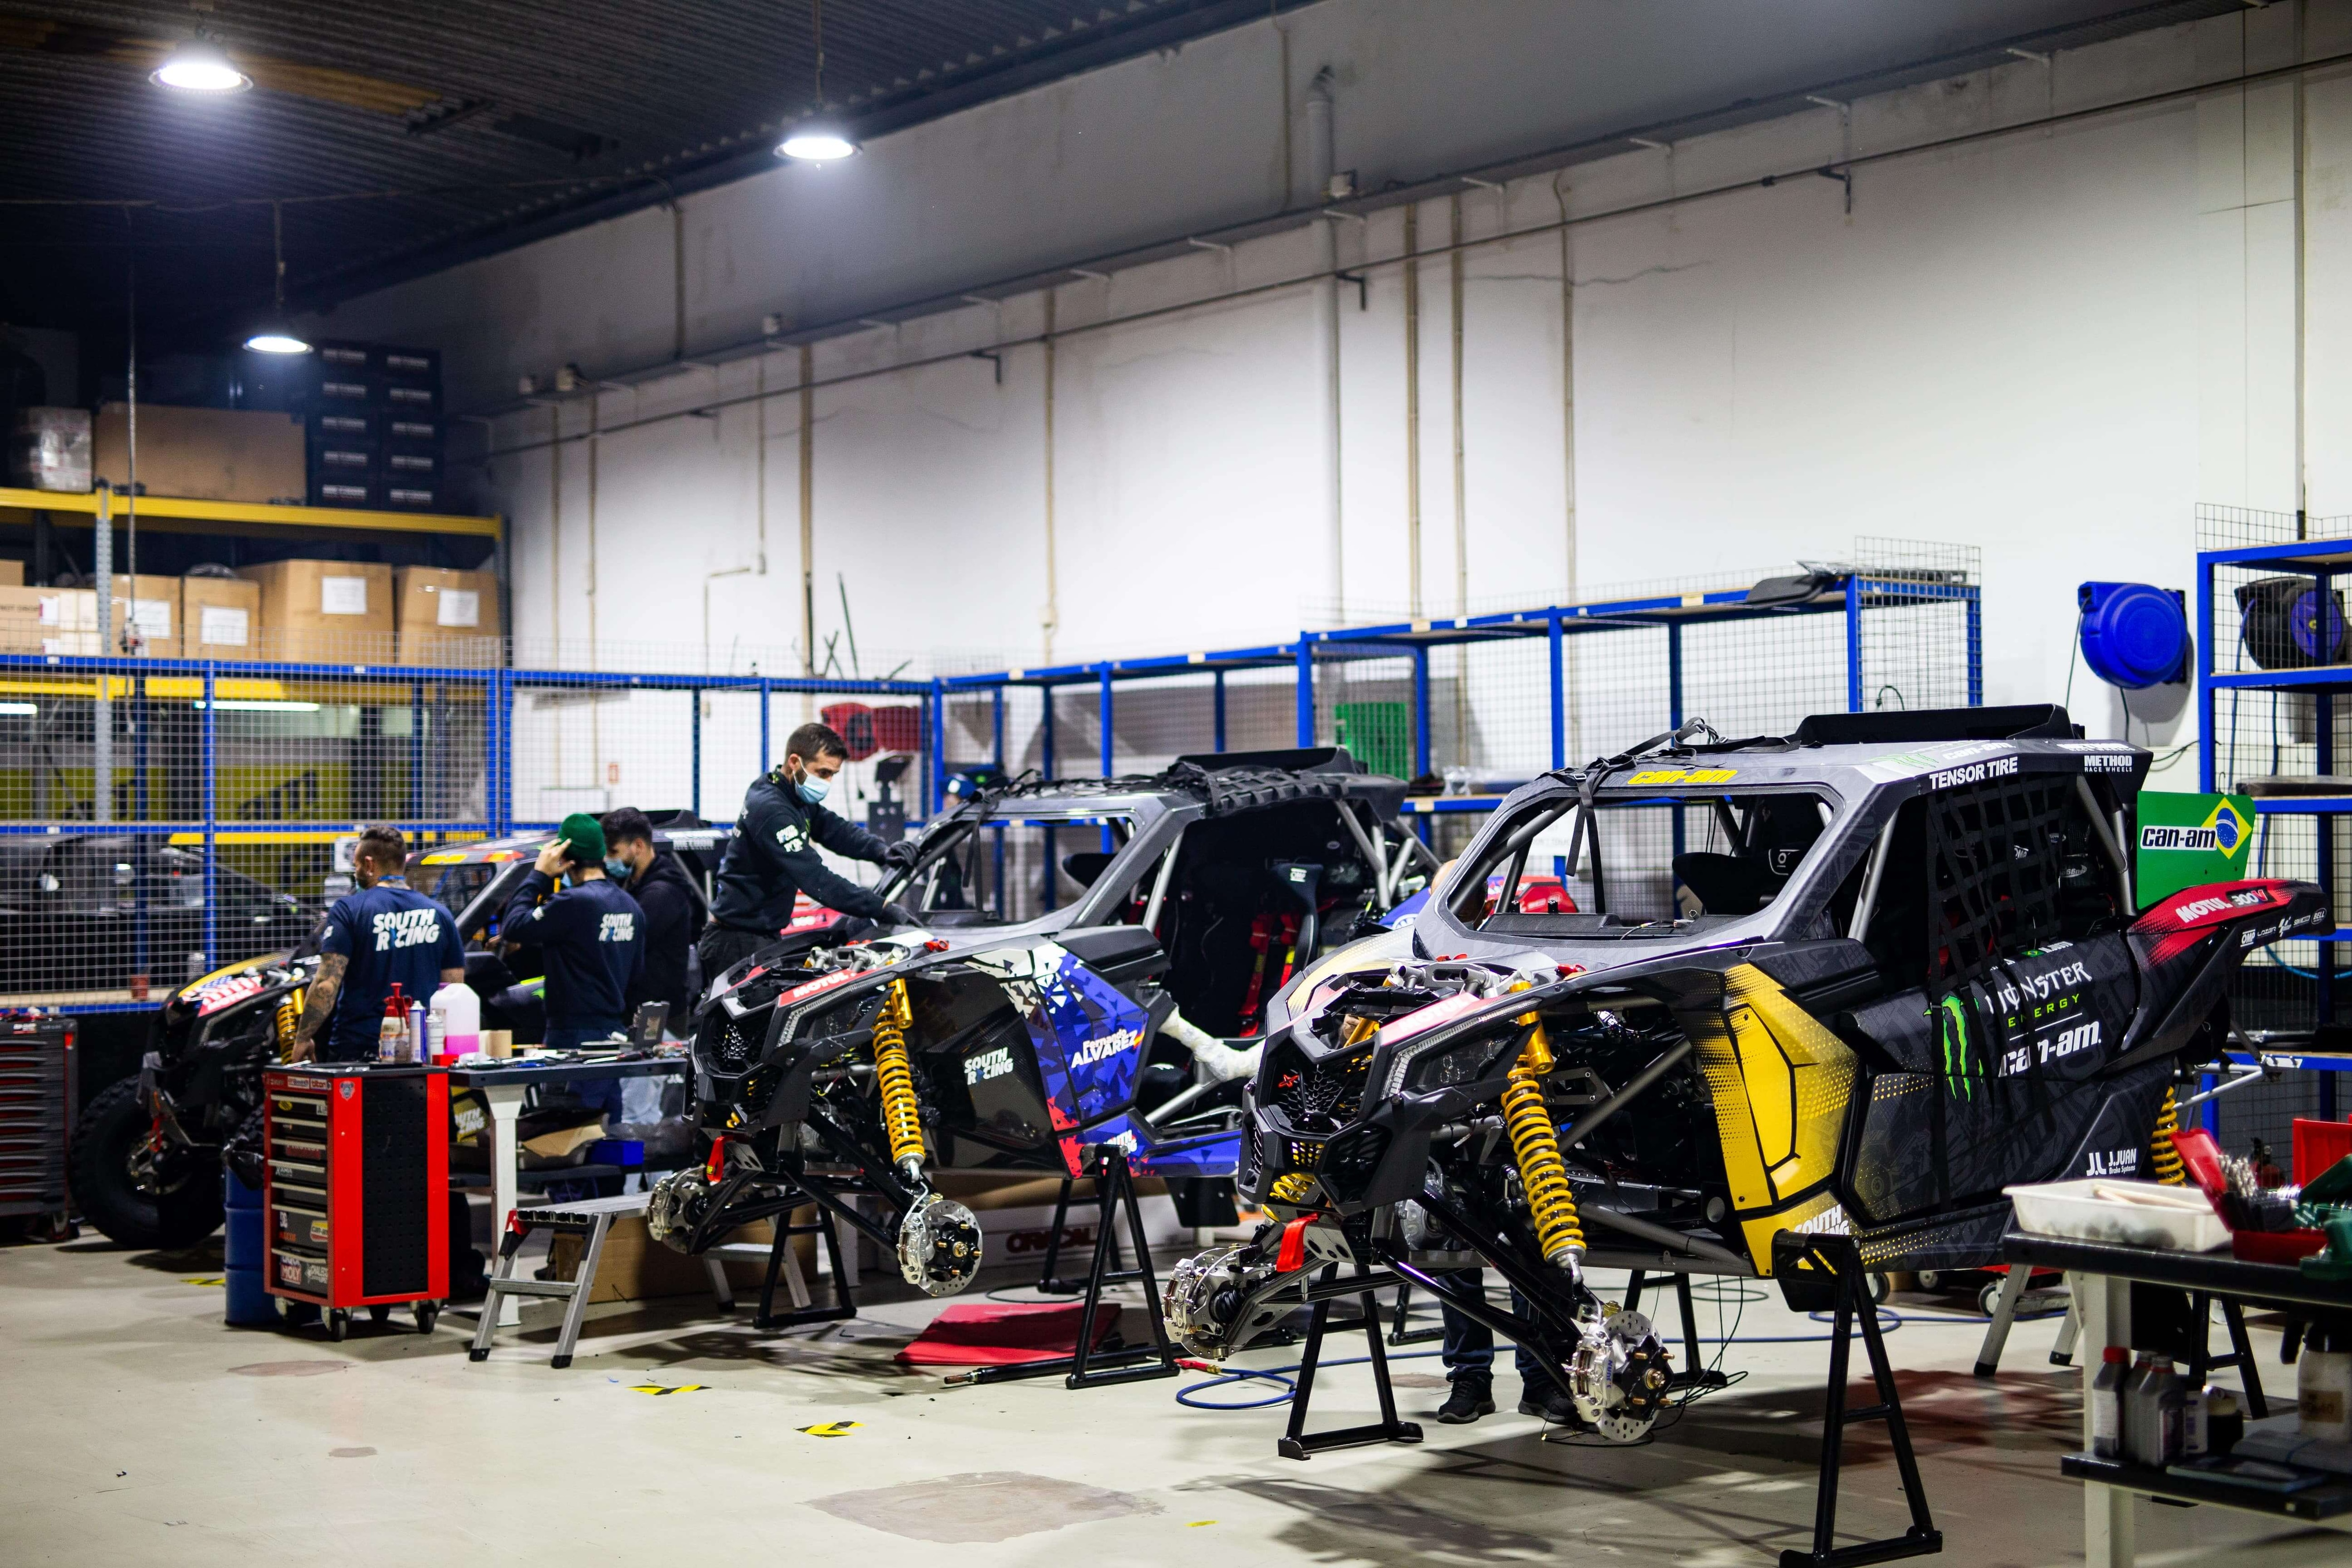 People preparing Can-Am Maverick X3 vehicles for 2021 Dakar Rally